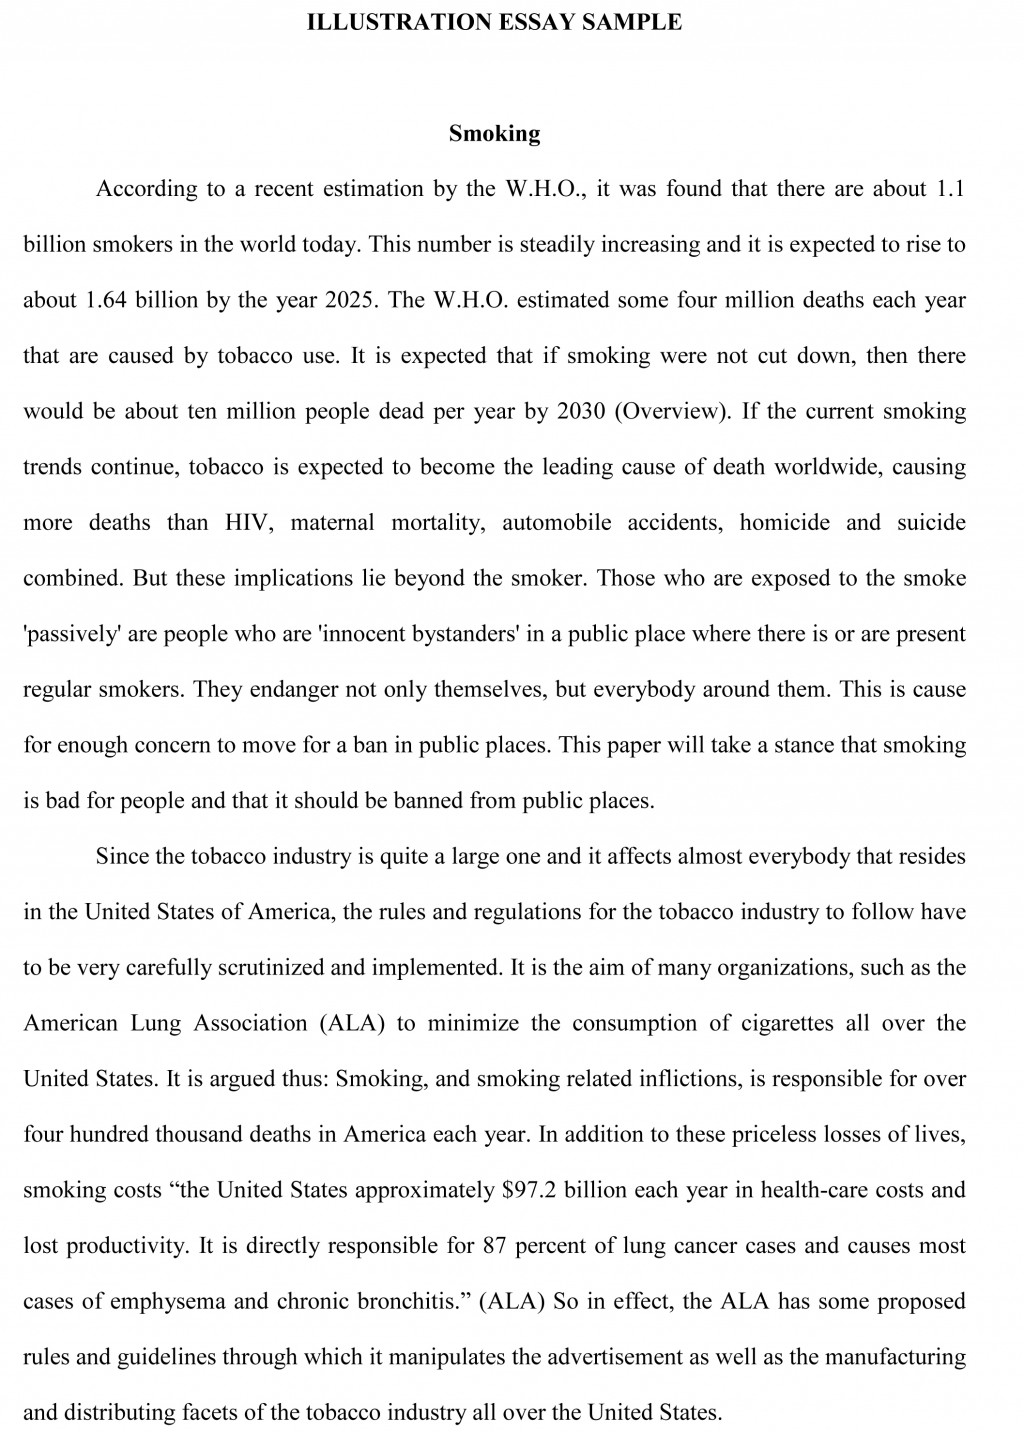 019 Illustration Essay Sample Example Humorous Outstanding Essays Funny In English For High School On Marriage Large